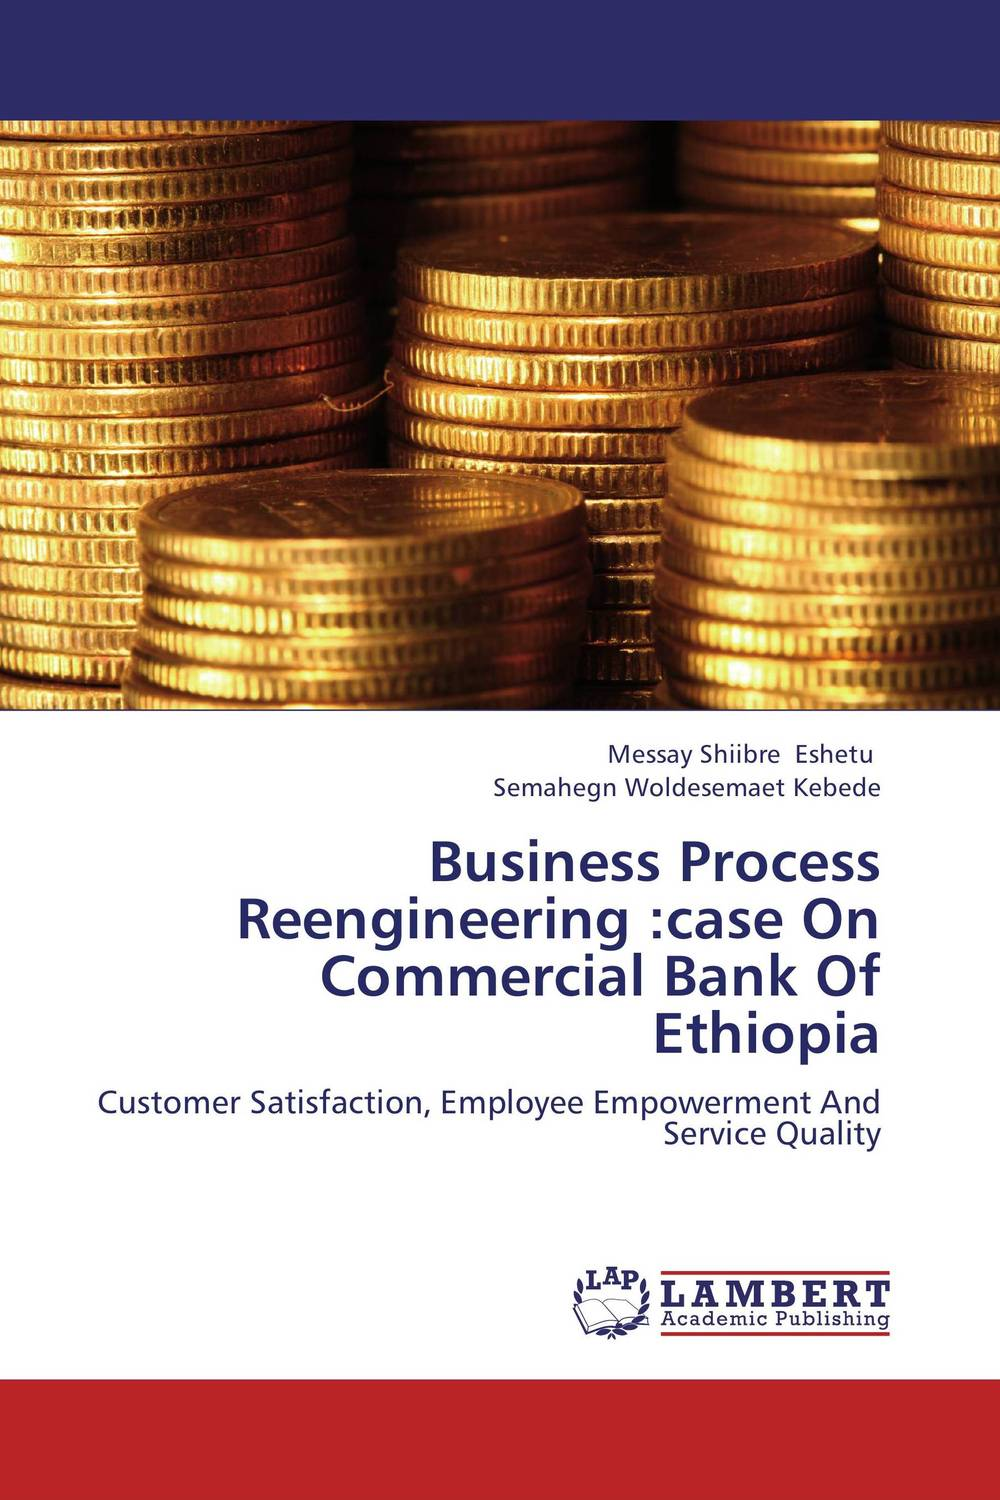 Business Process Reengineering :case On Commercial Bank Of Ethiopia jacob thomas empowering process in business organisations